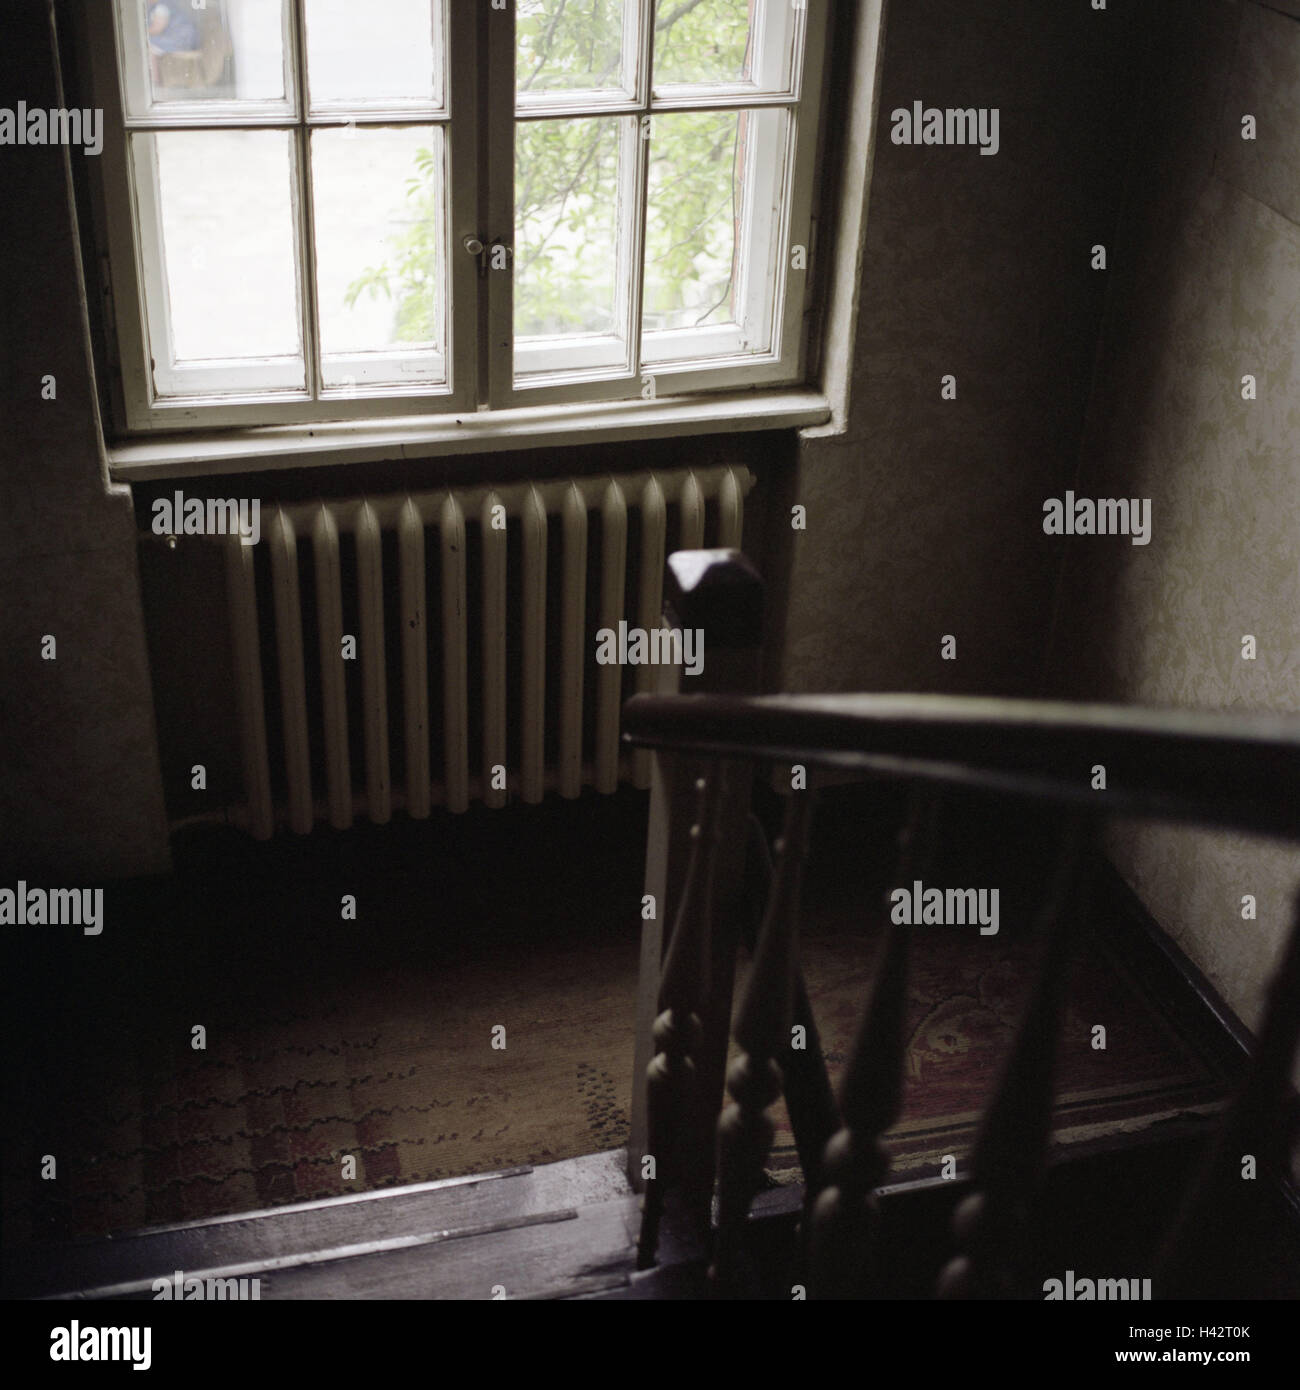 Staircase, interior, window, old, Poland, Rybnik, psychiatry, building, transom windows, stairs, banisters, railings, - Stock Image